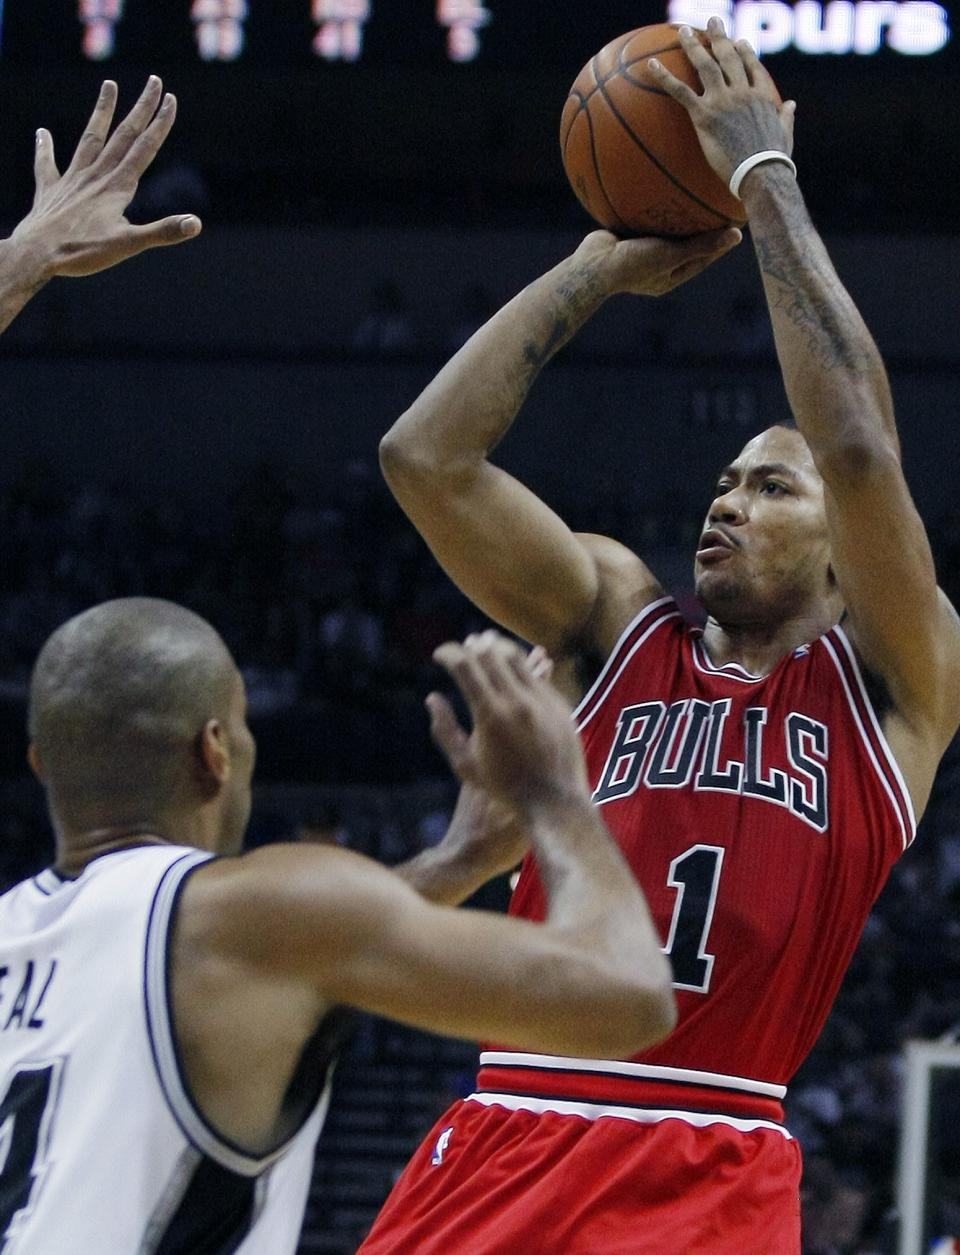 Chicago Bulls' Derrick Rose (1) shoots over San Antonio Spurs' Gary Neal during the second half of an NBA basketball game, Wednesday, Feb. 29, 2012, in San Antonio. Chicago won 96-89. (AP Photo/Darren Abate)